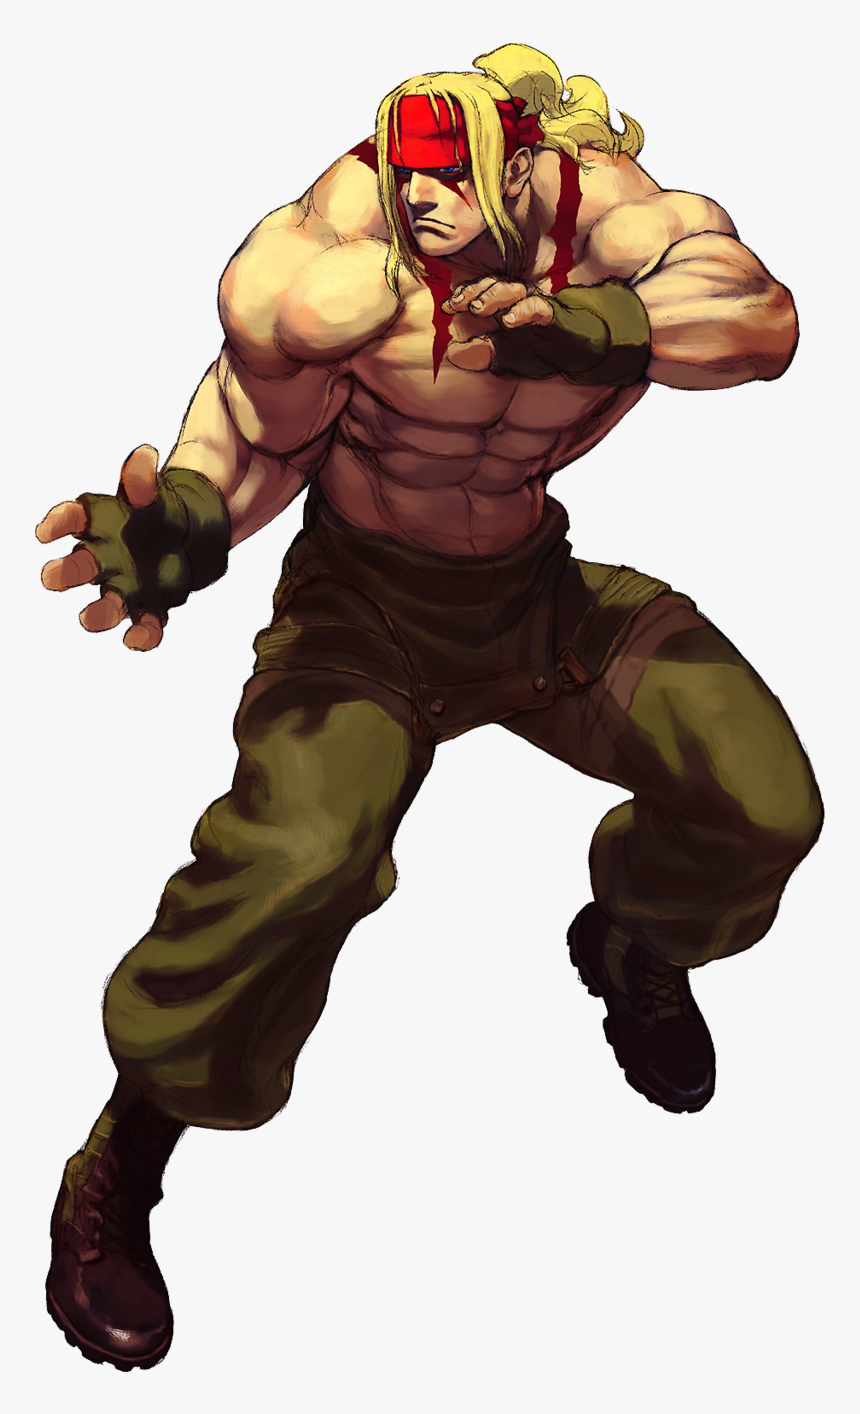 Street Fighter Iii Alex Street Fighter Hd Png Download Kindpng